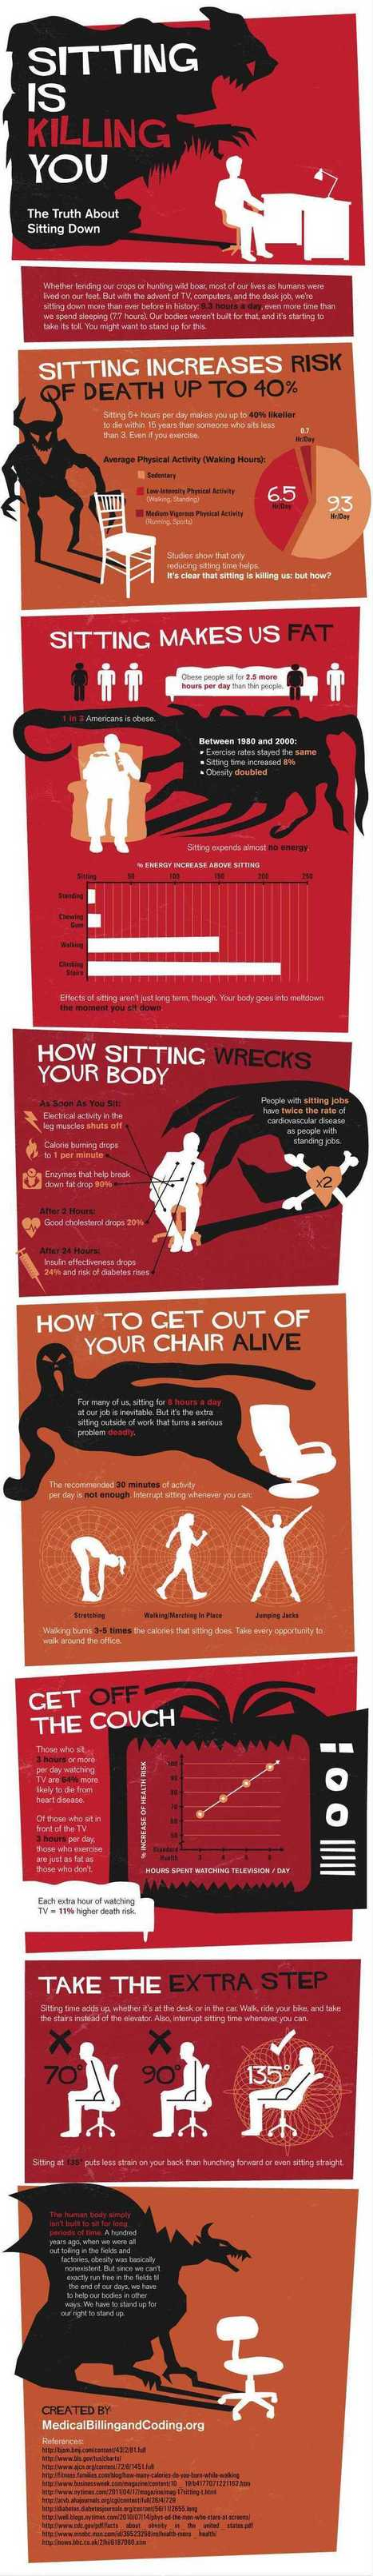 Sitting is the new smoking: The cure to sitting disease | Bodyworks | Scoop.it